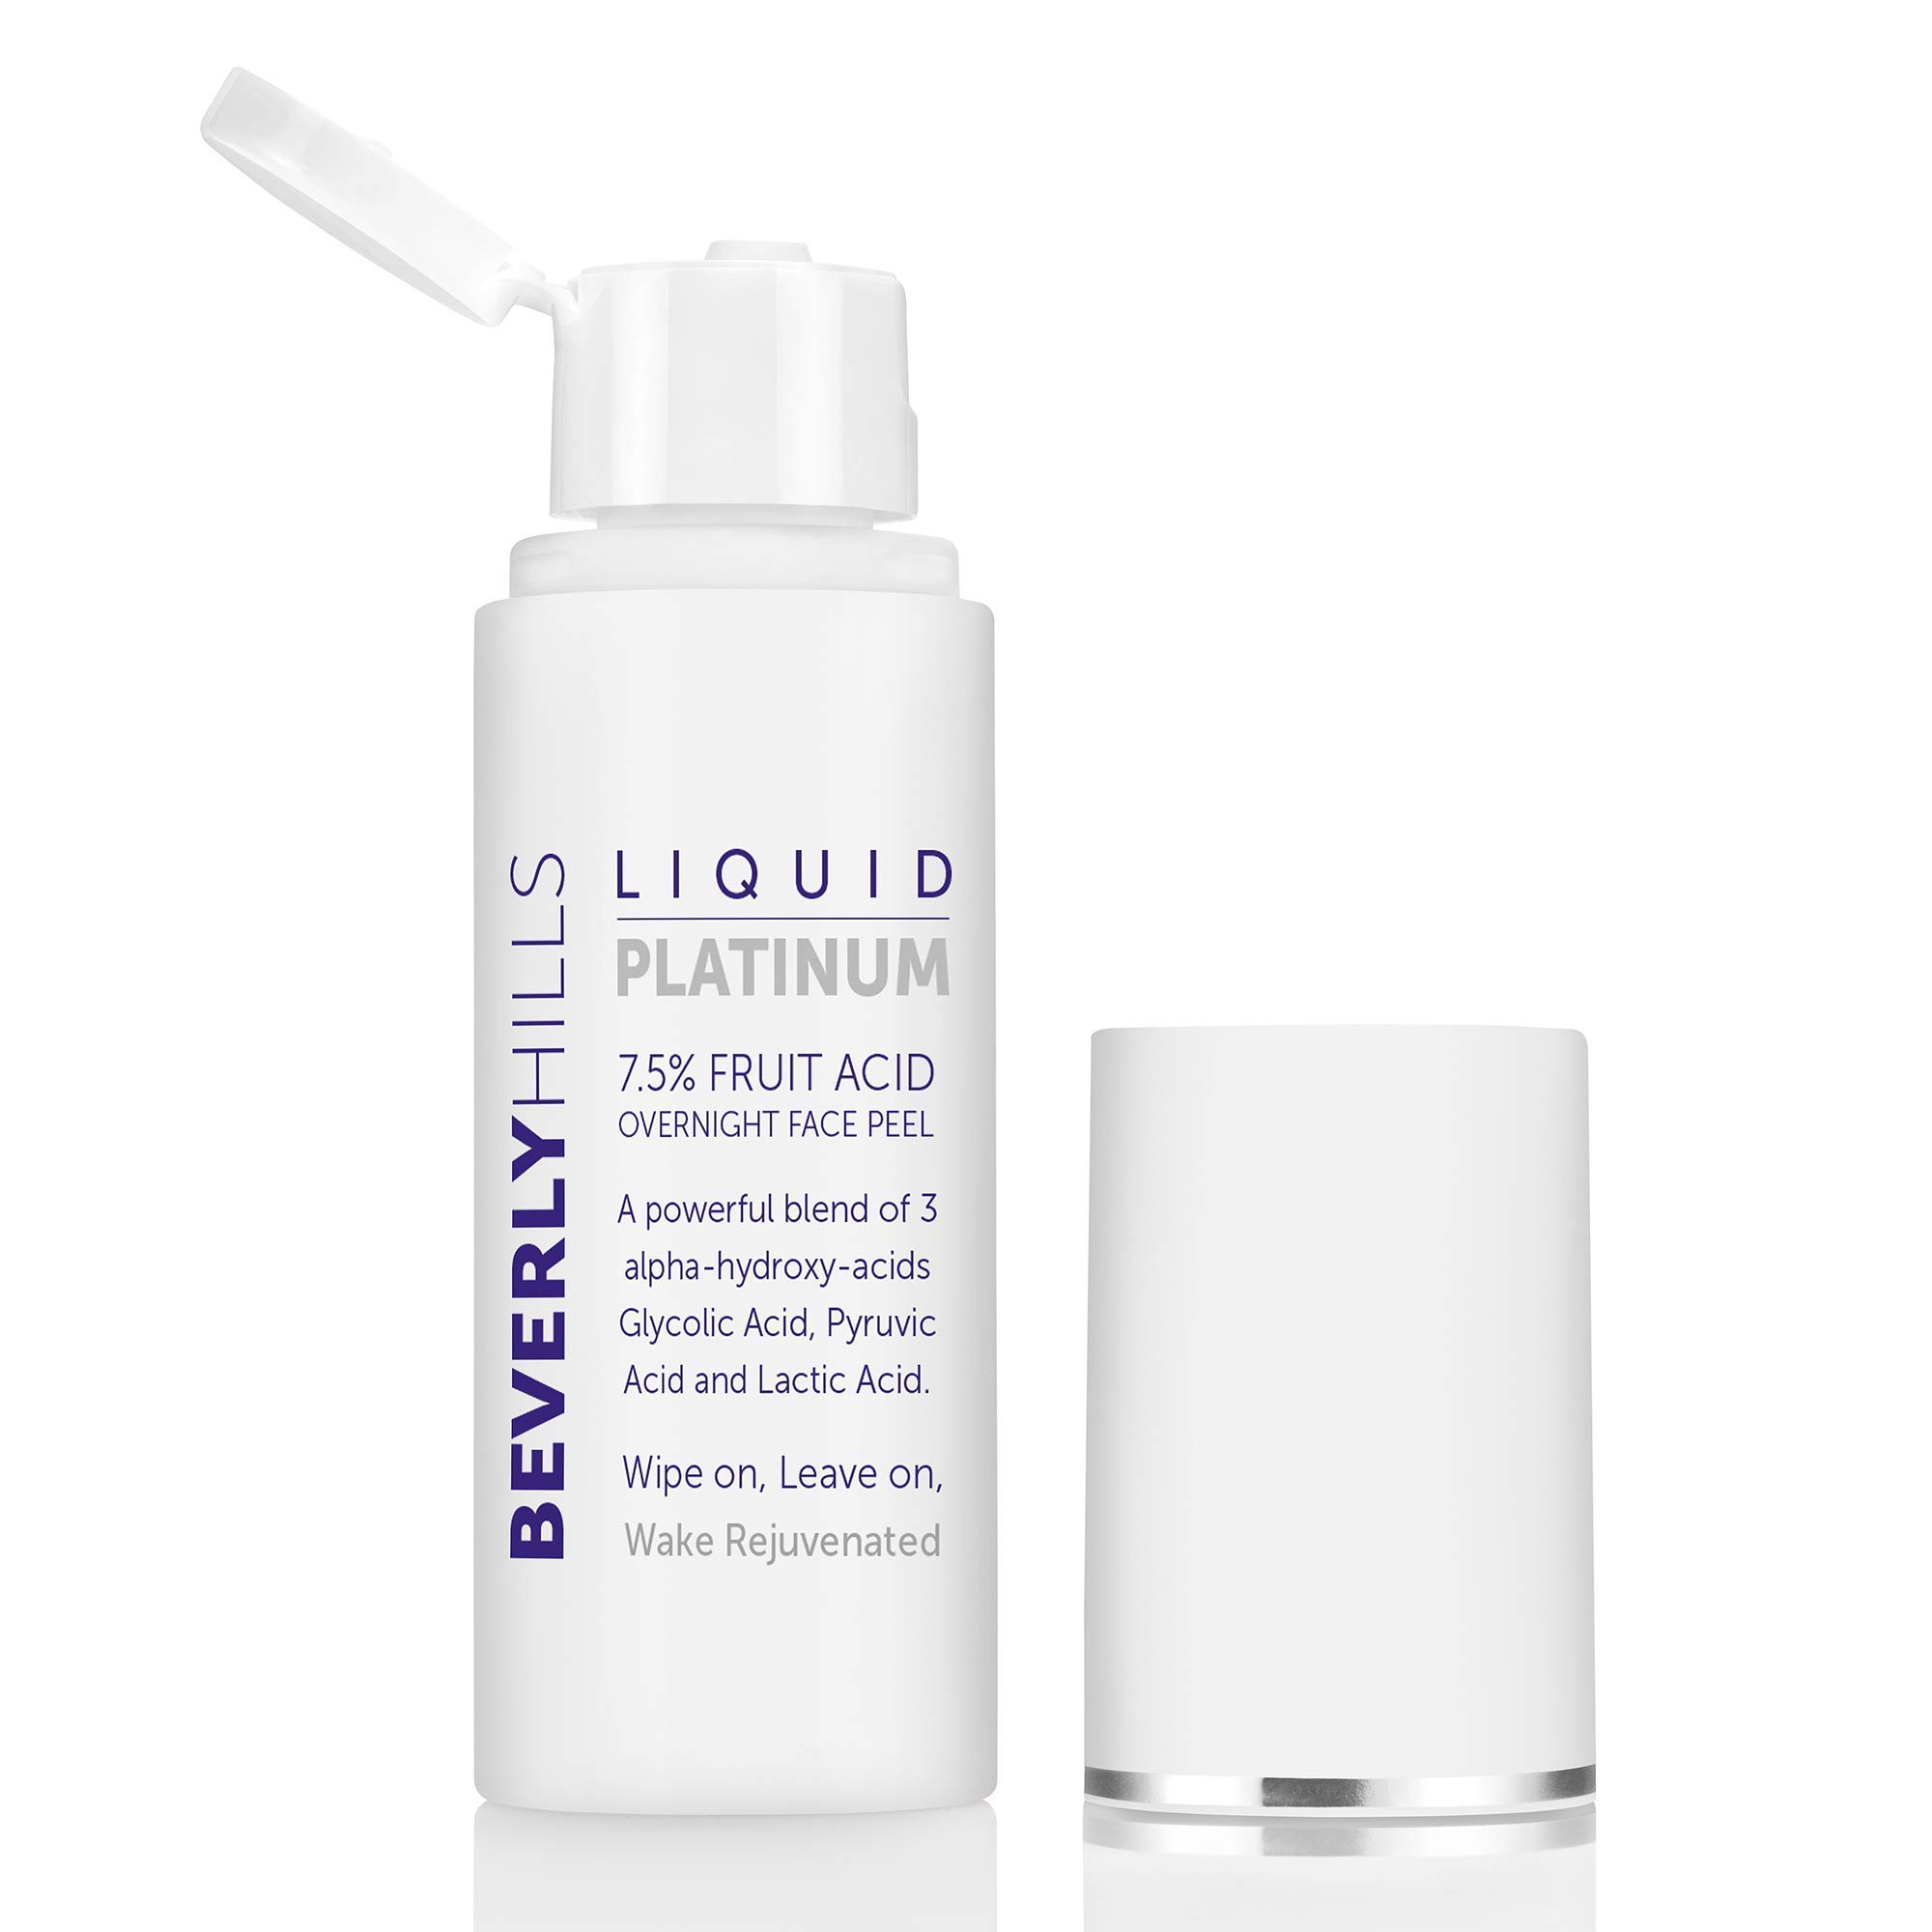 Beverly Hills 7.5% Liquid Platinum Fruit Acid Facial Peeling Solution with Glycolic Acid, Lactic Acid, and Pyruvic Acid